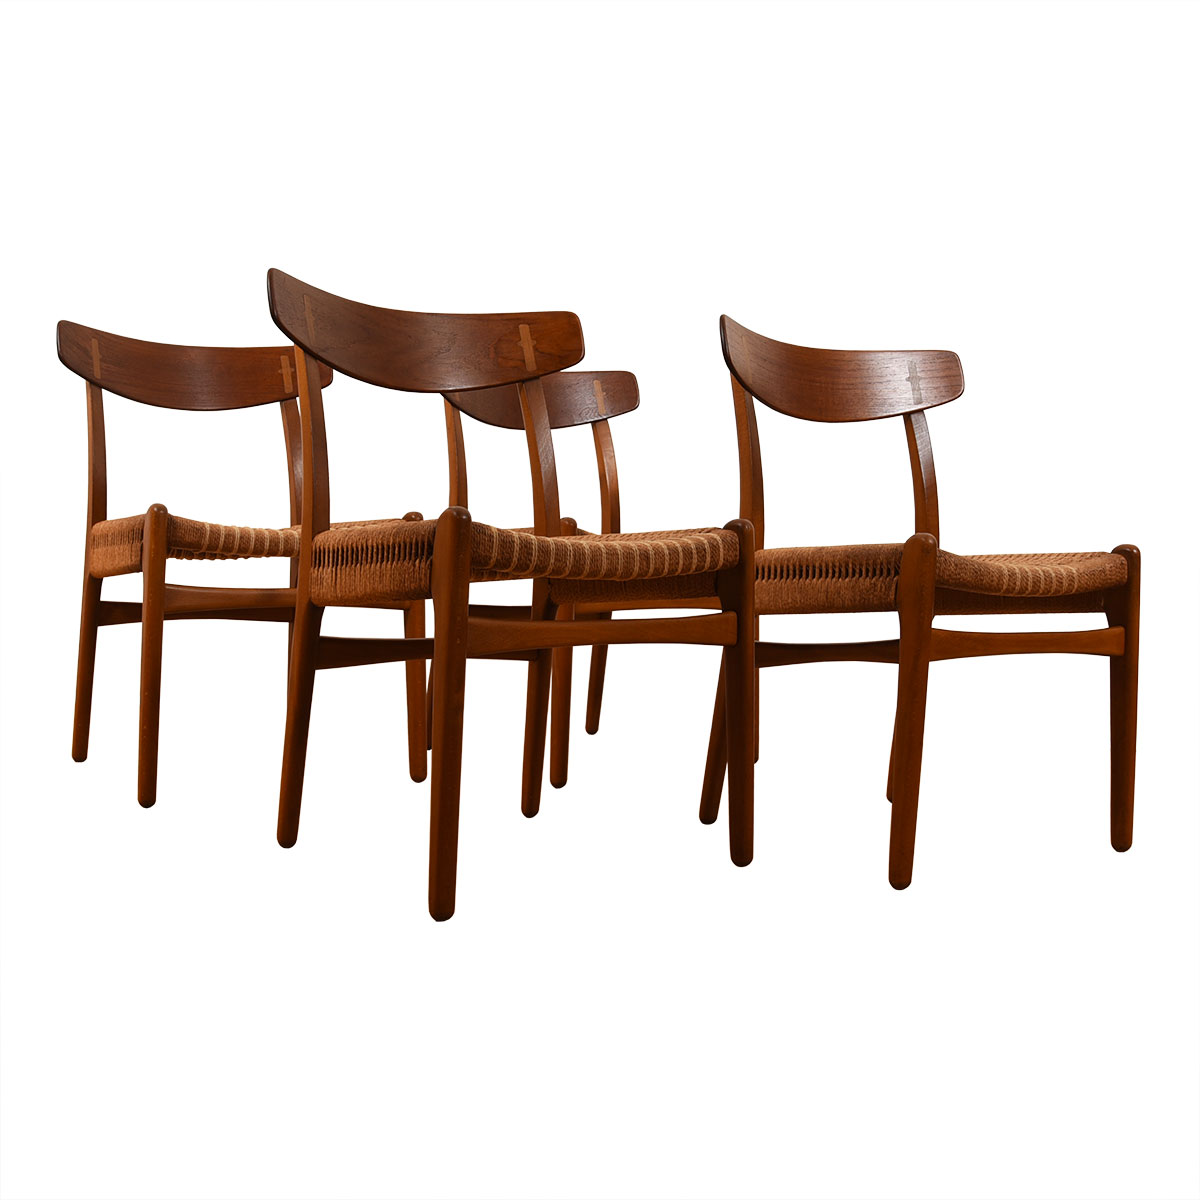 Hans Wegner CH23 Dining Chairs — Teak Set of 4 with Rope Seats